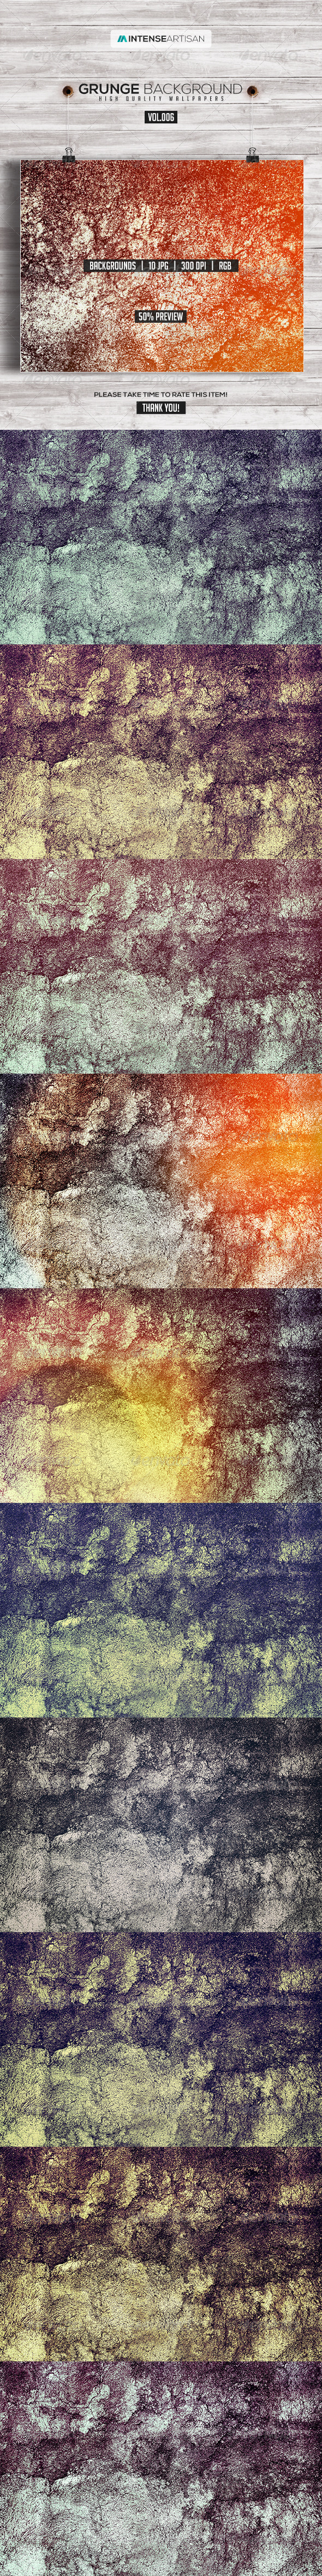 GraphicRiver 10 Grunge Background Vol.6 8307670